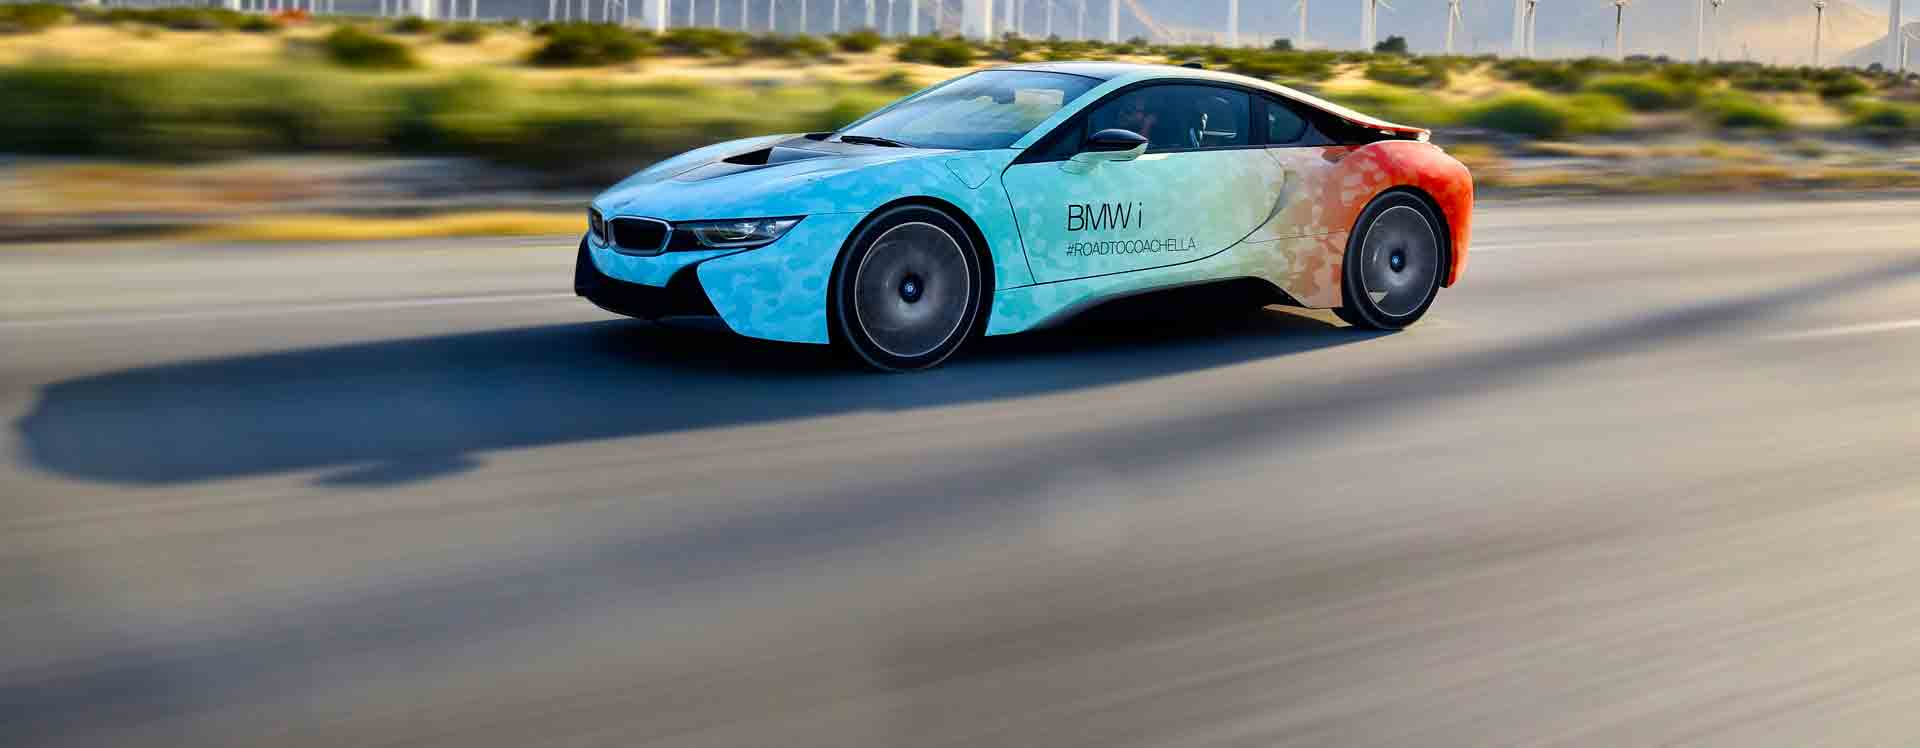 The Latest Hybrid Electric Bmw I8 Price Colors Special Edition